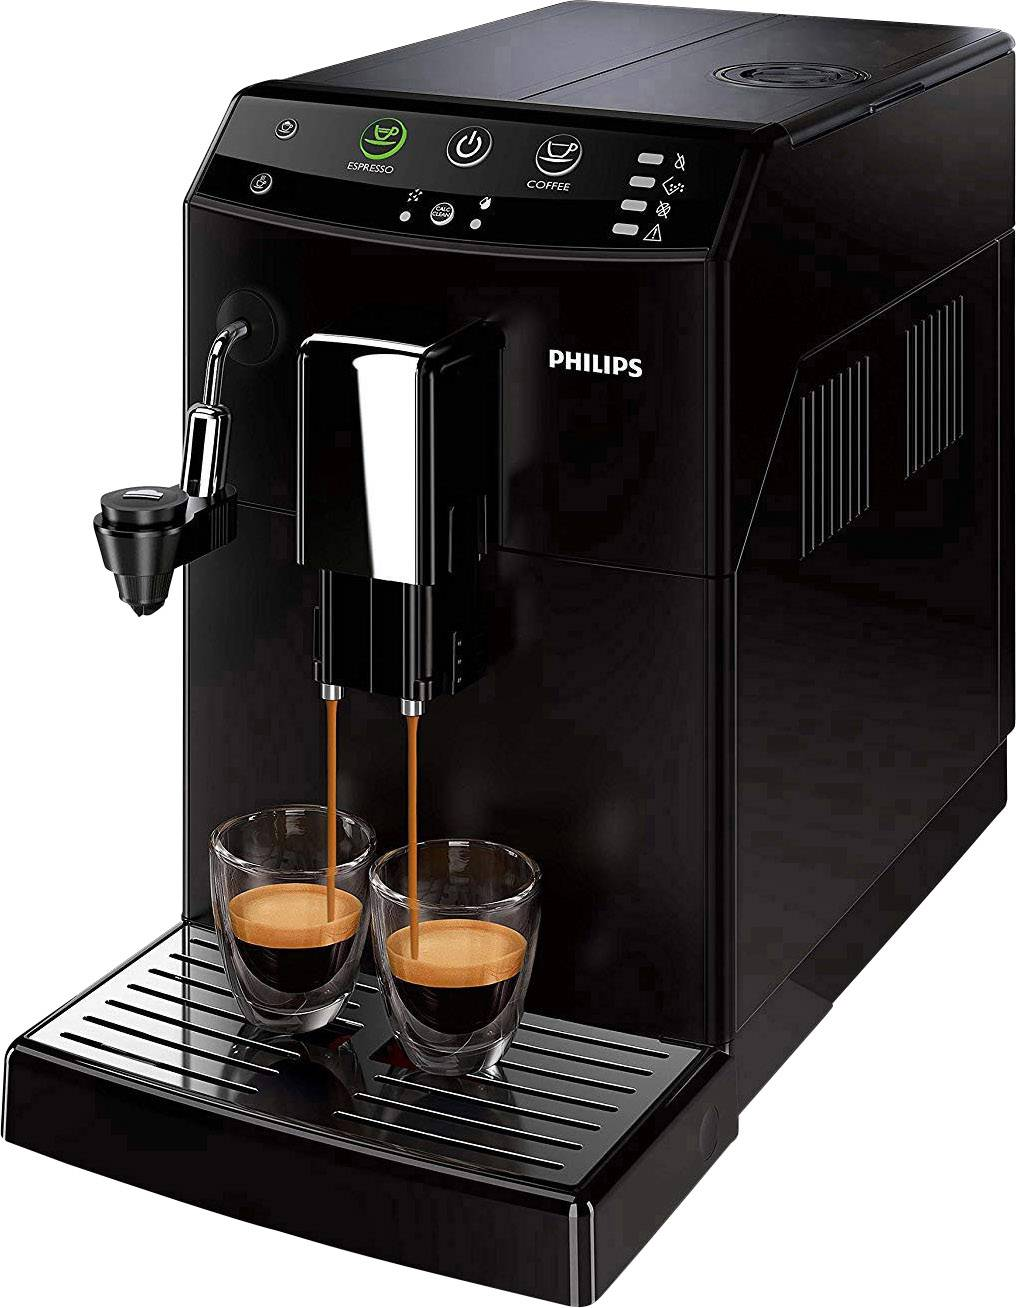 Fully Automated Coffee Machine Philips Series 3000 Hd882401